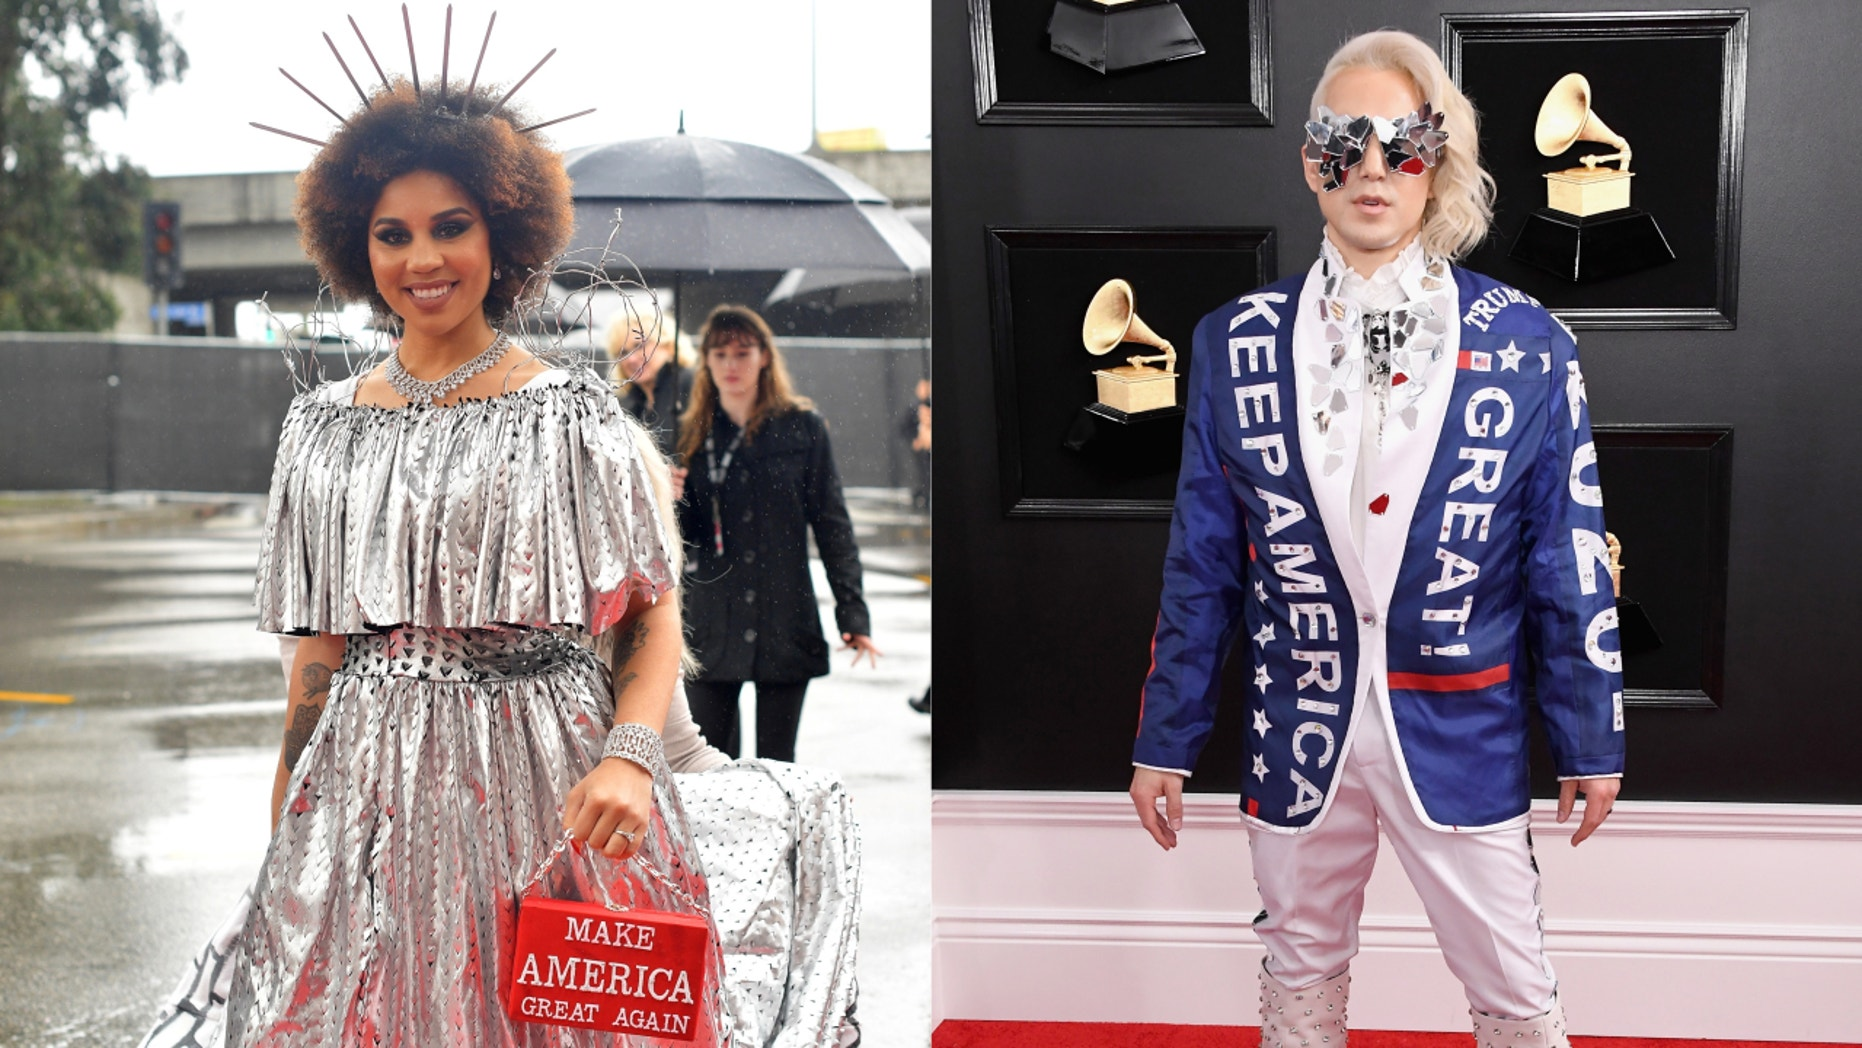 Singer Joy Villa dresses as Trump border wall at Grammys